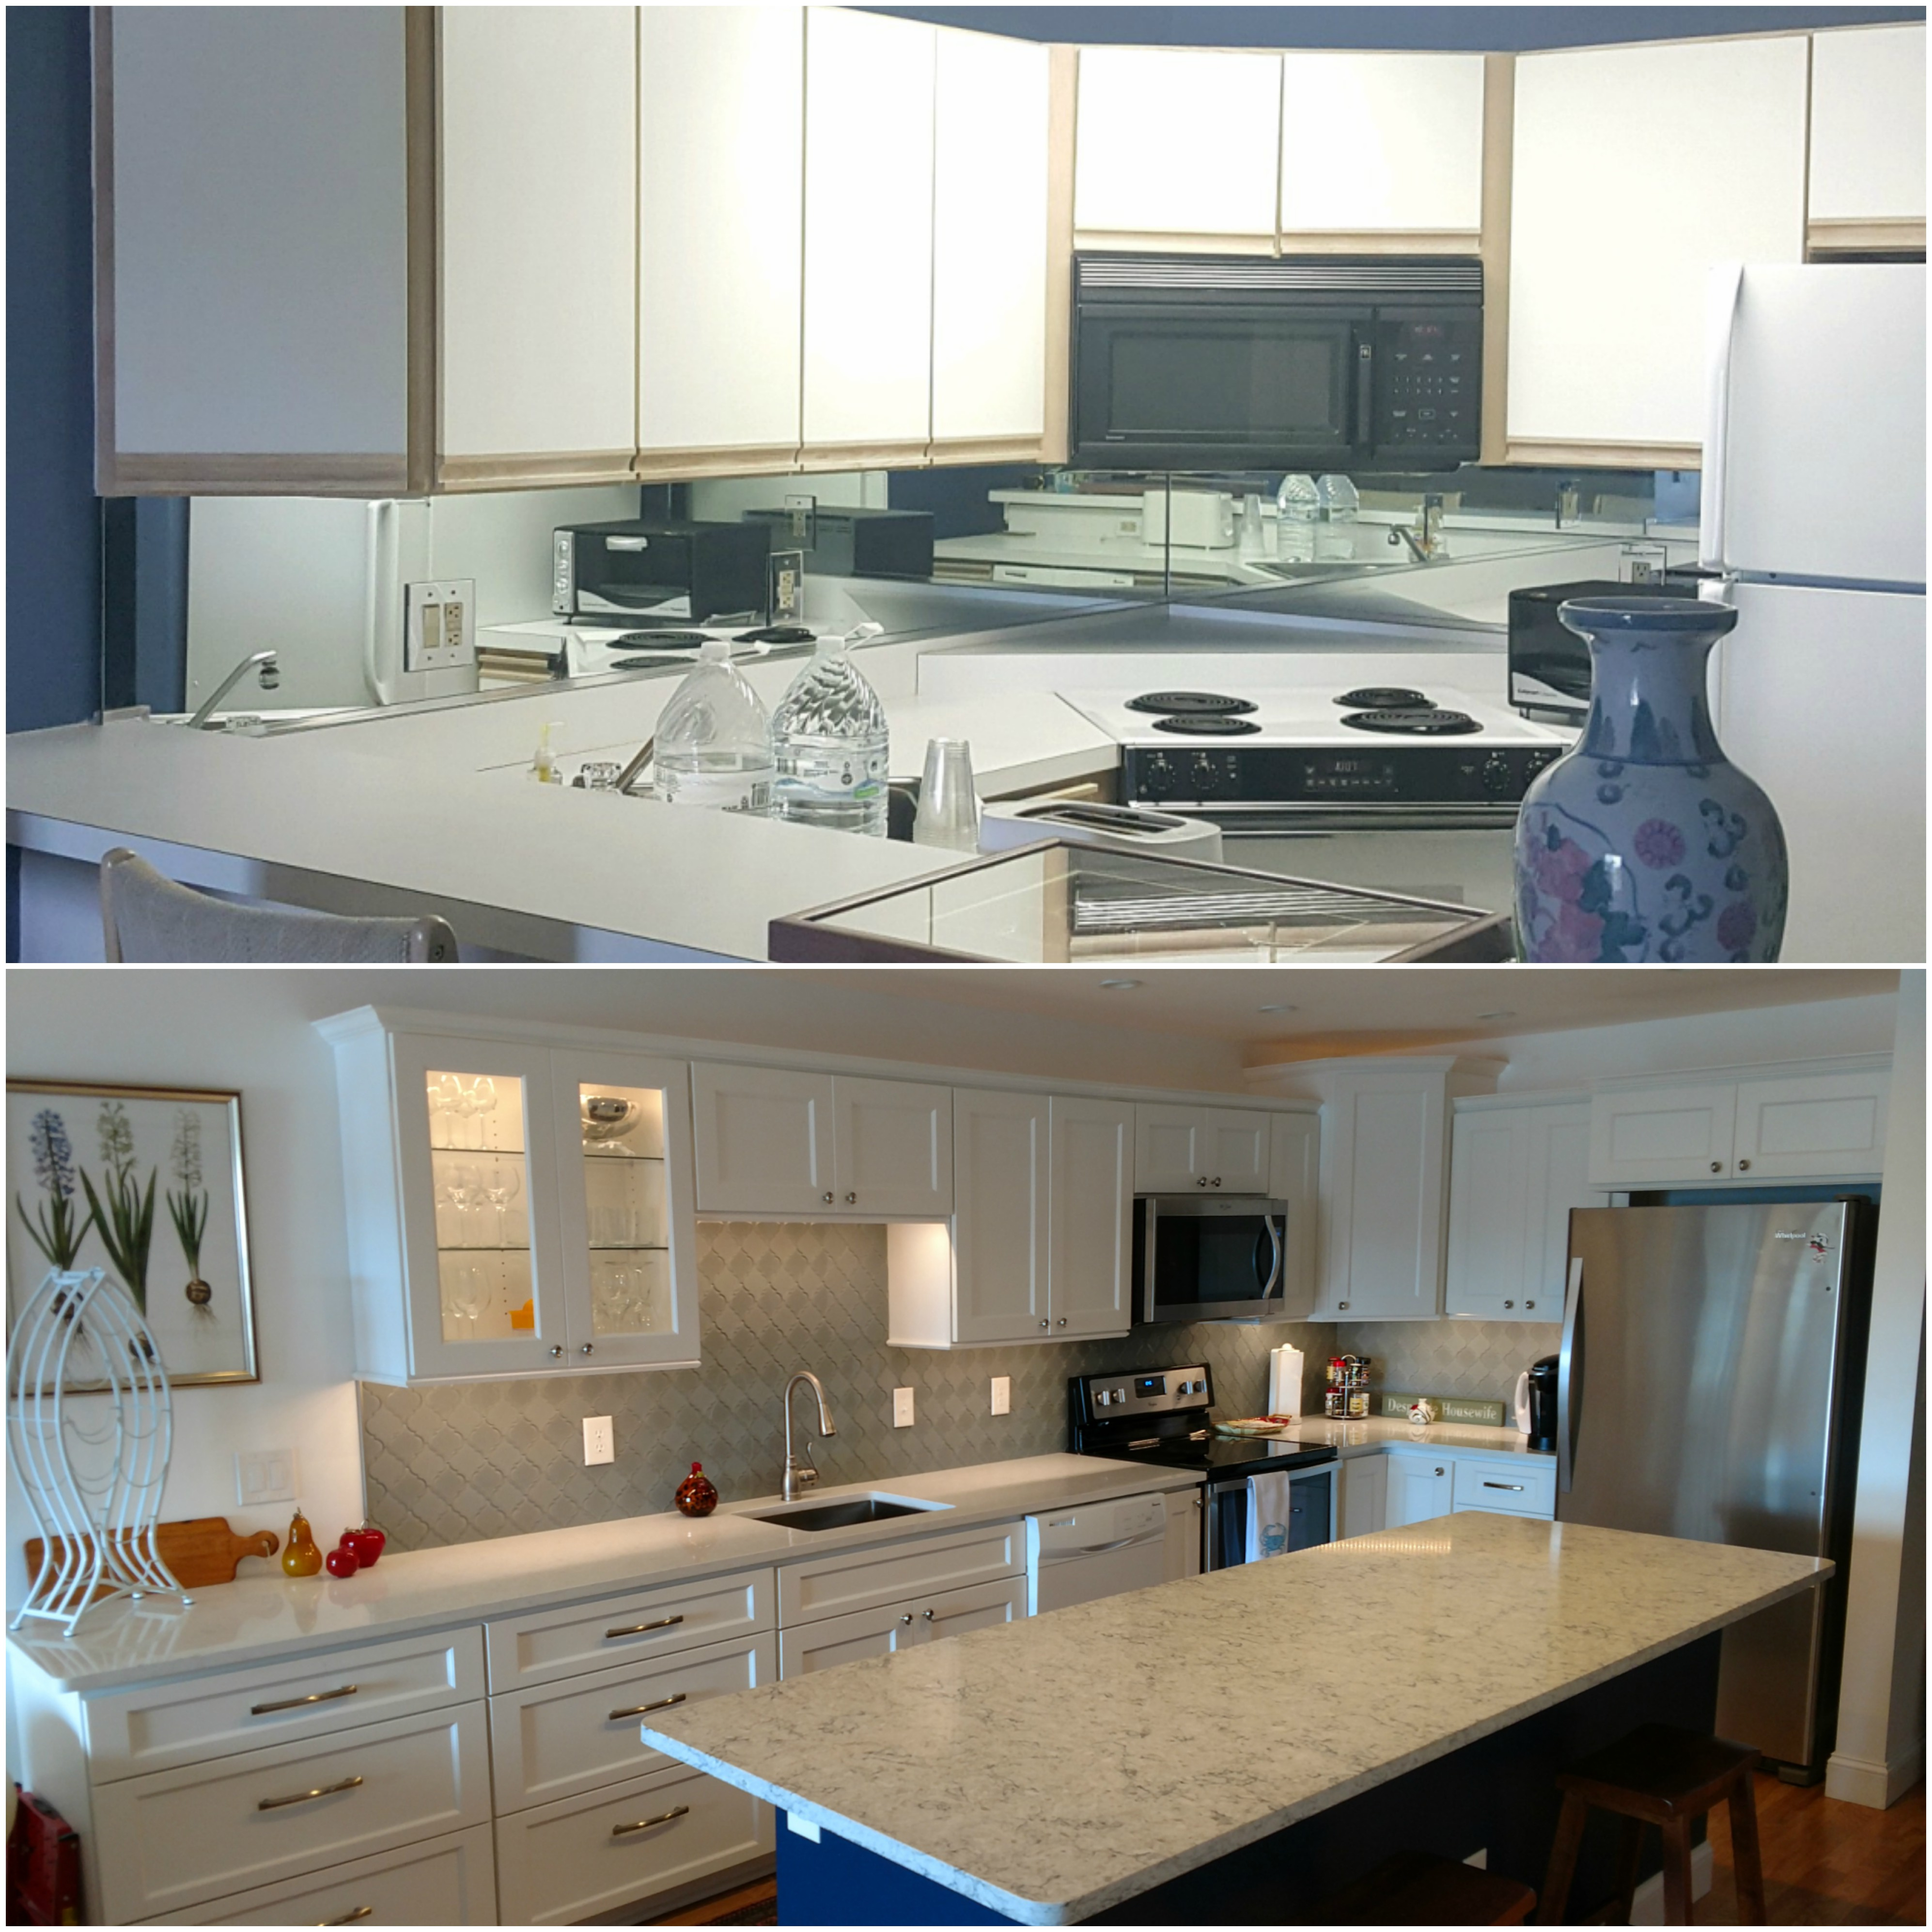 Accurate Upgrades Home Improvements LLC image 16